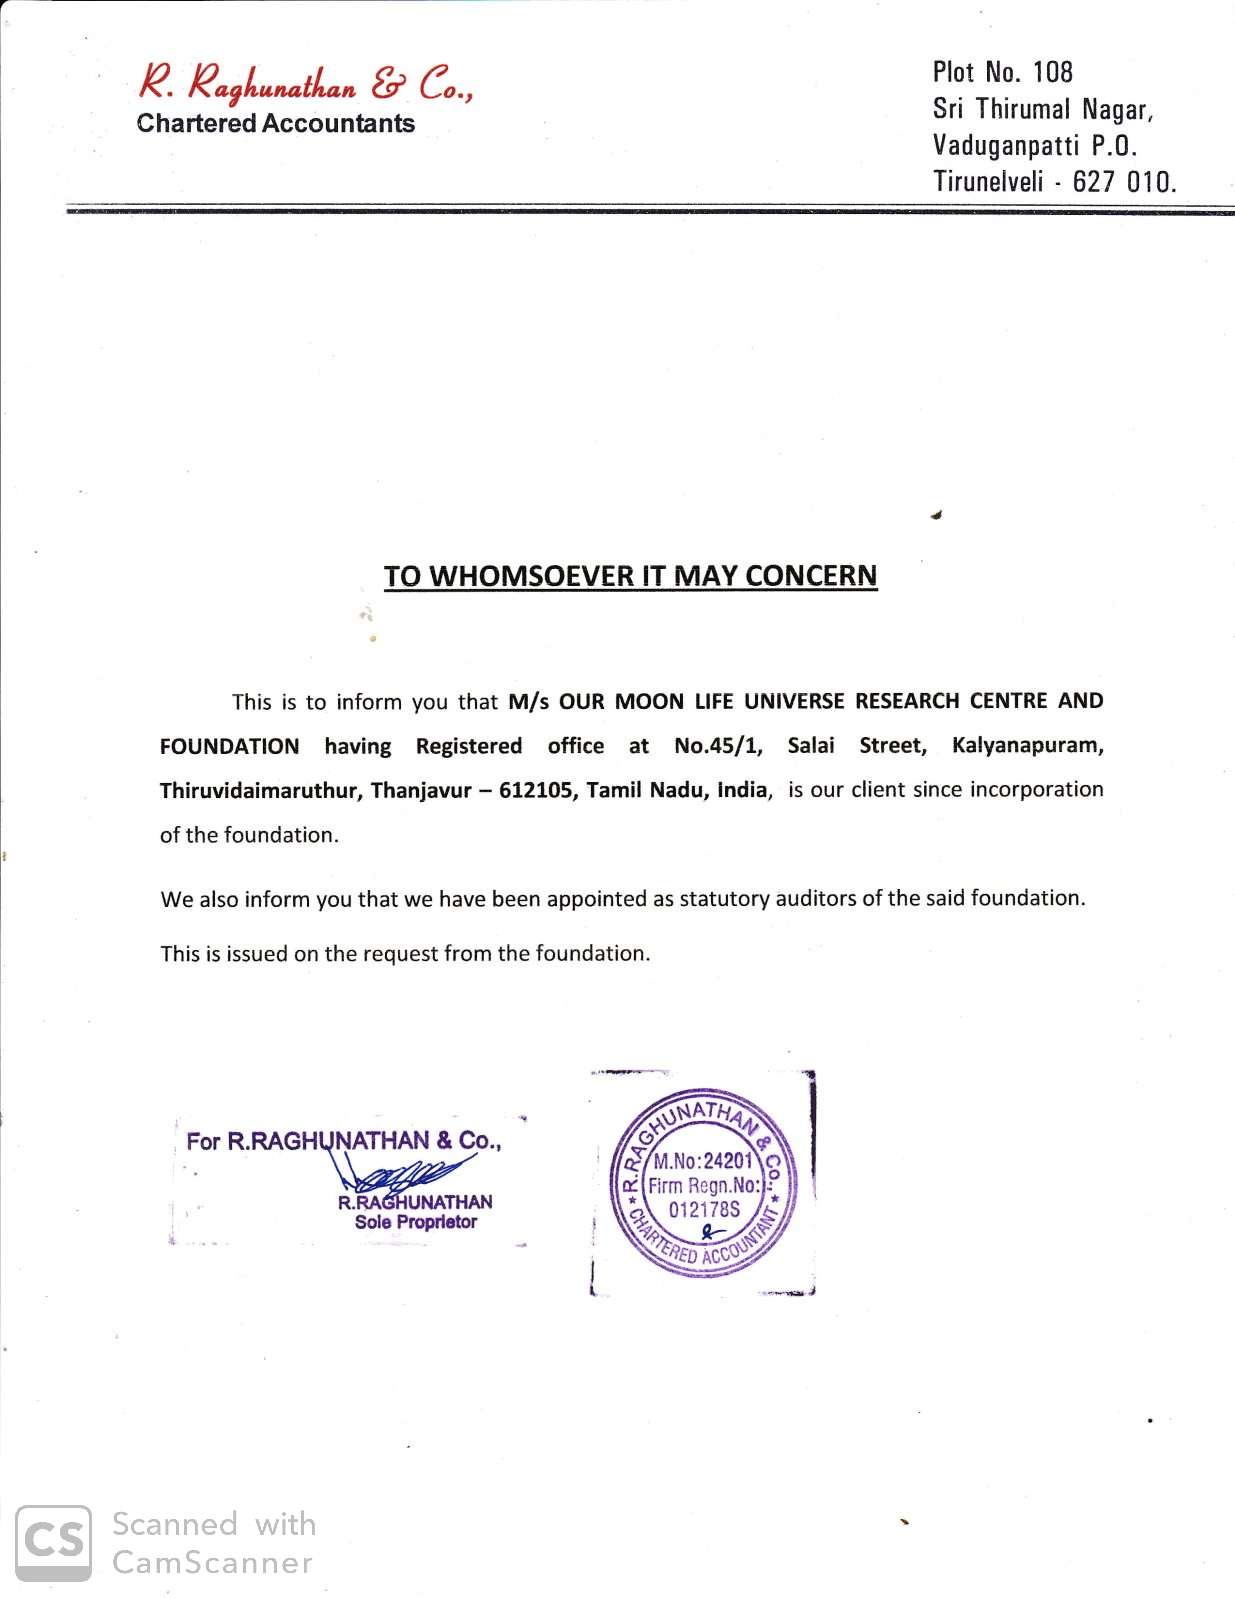 CA Letter to OurMoonLife Universe Research Centre and Foundation